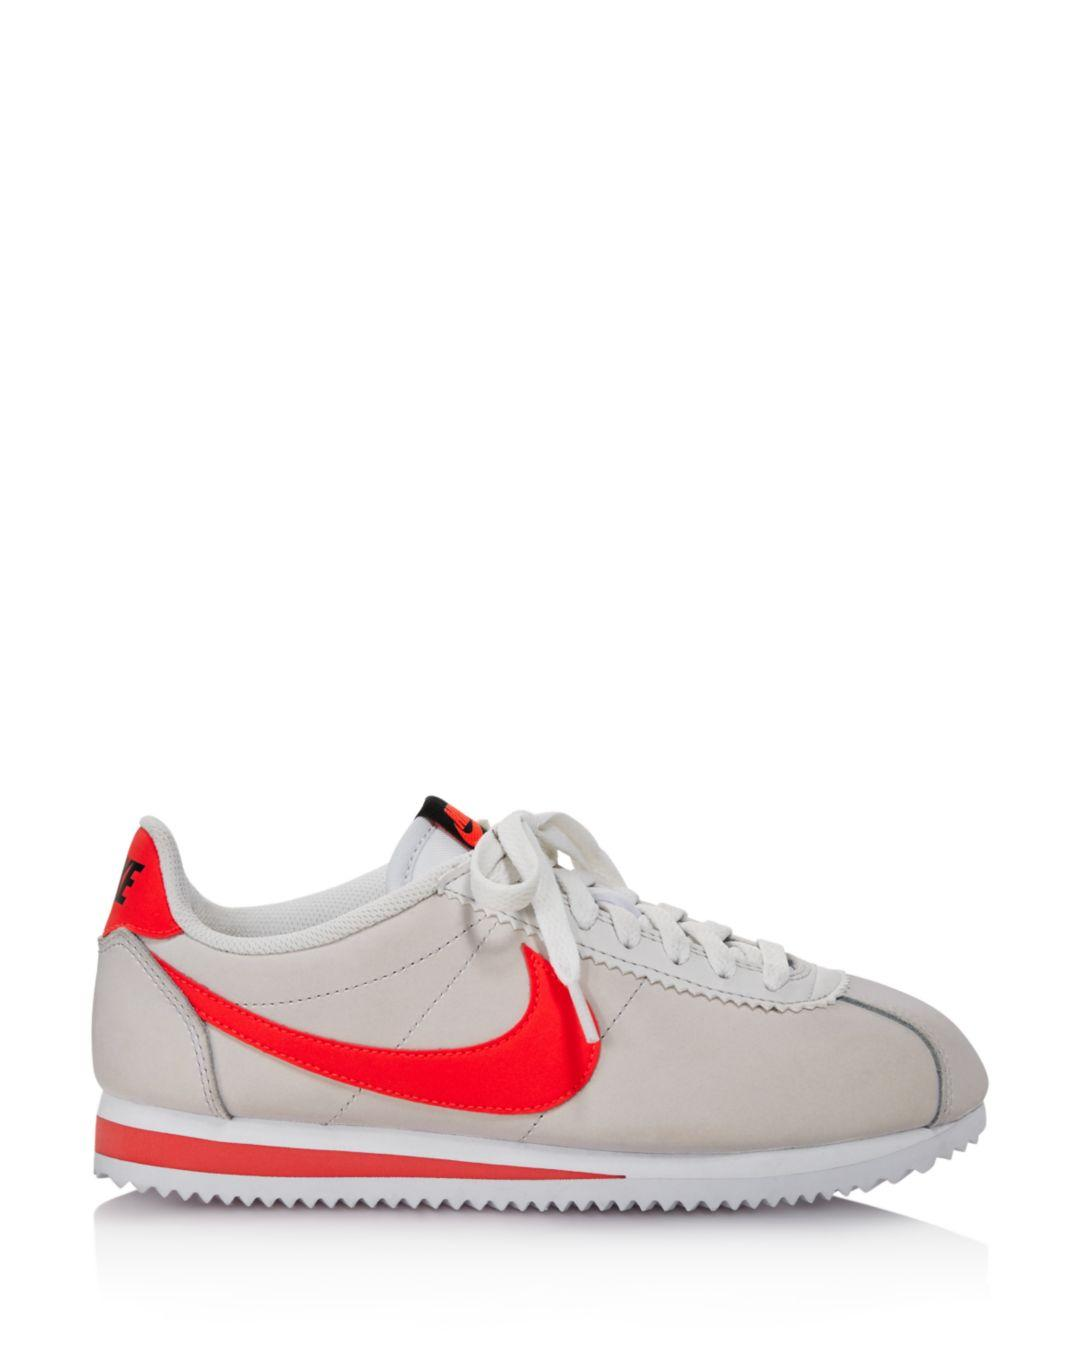 ab2bea6679d3 Lyst - Nike Women s Classic Cortez Leather Lace Up Sneakers in White - Save  26%